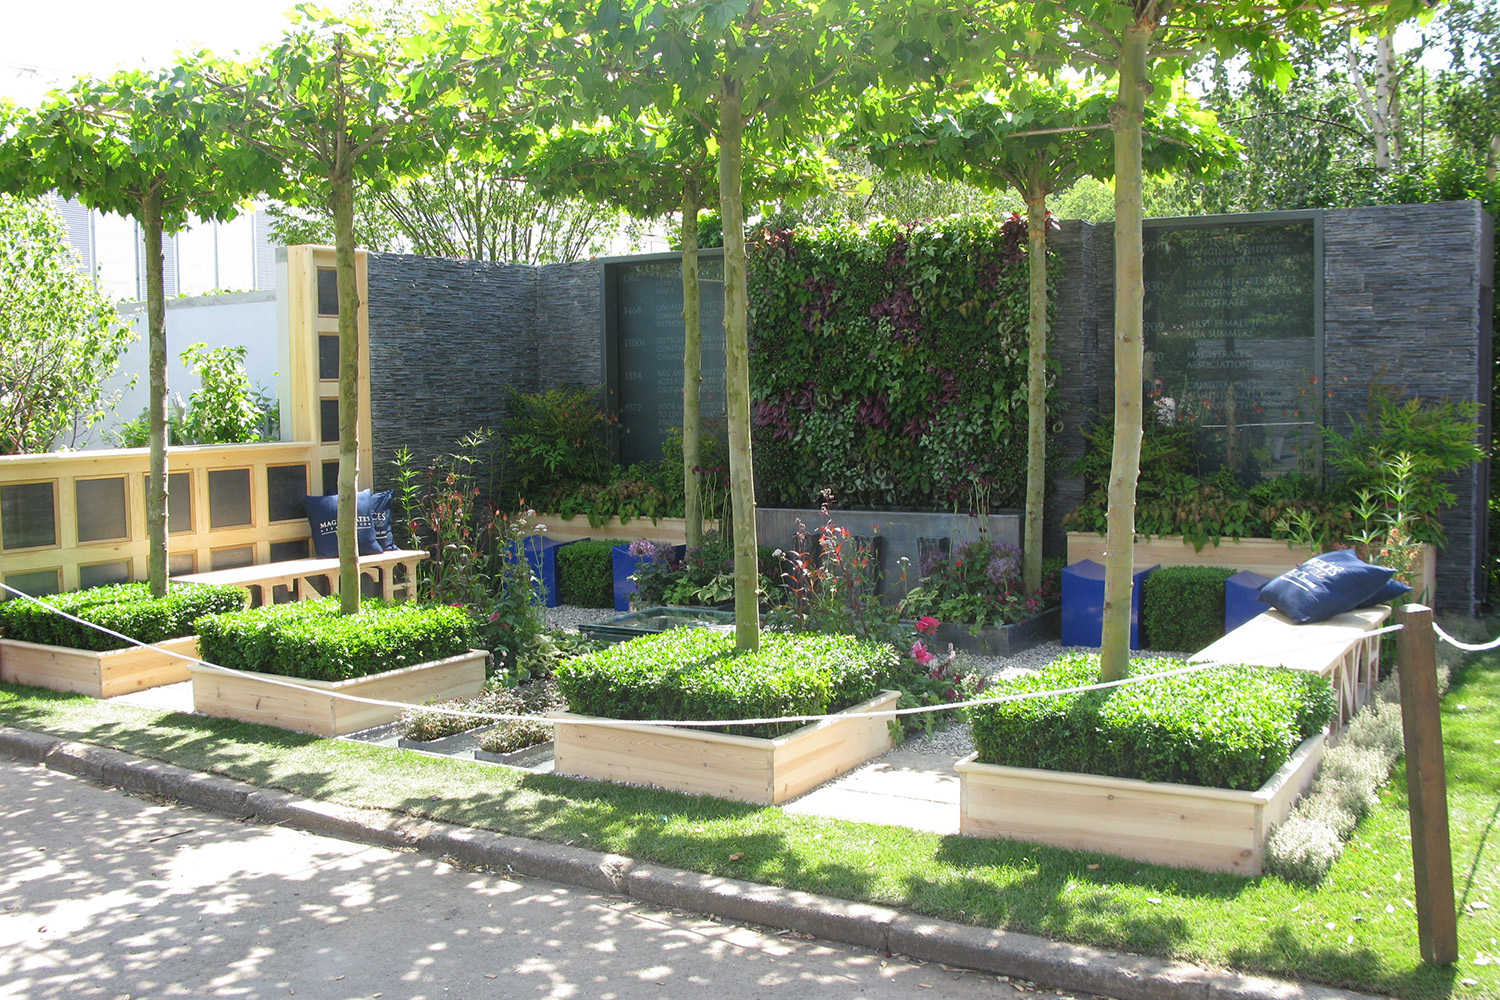 RHS Chelsea Flower Show - Magistrates Association